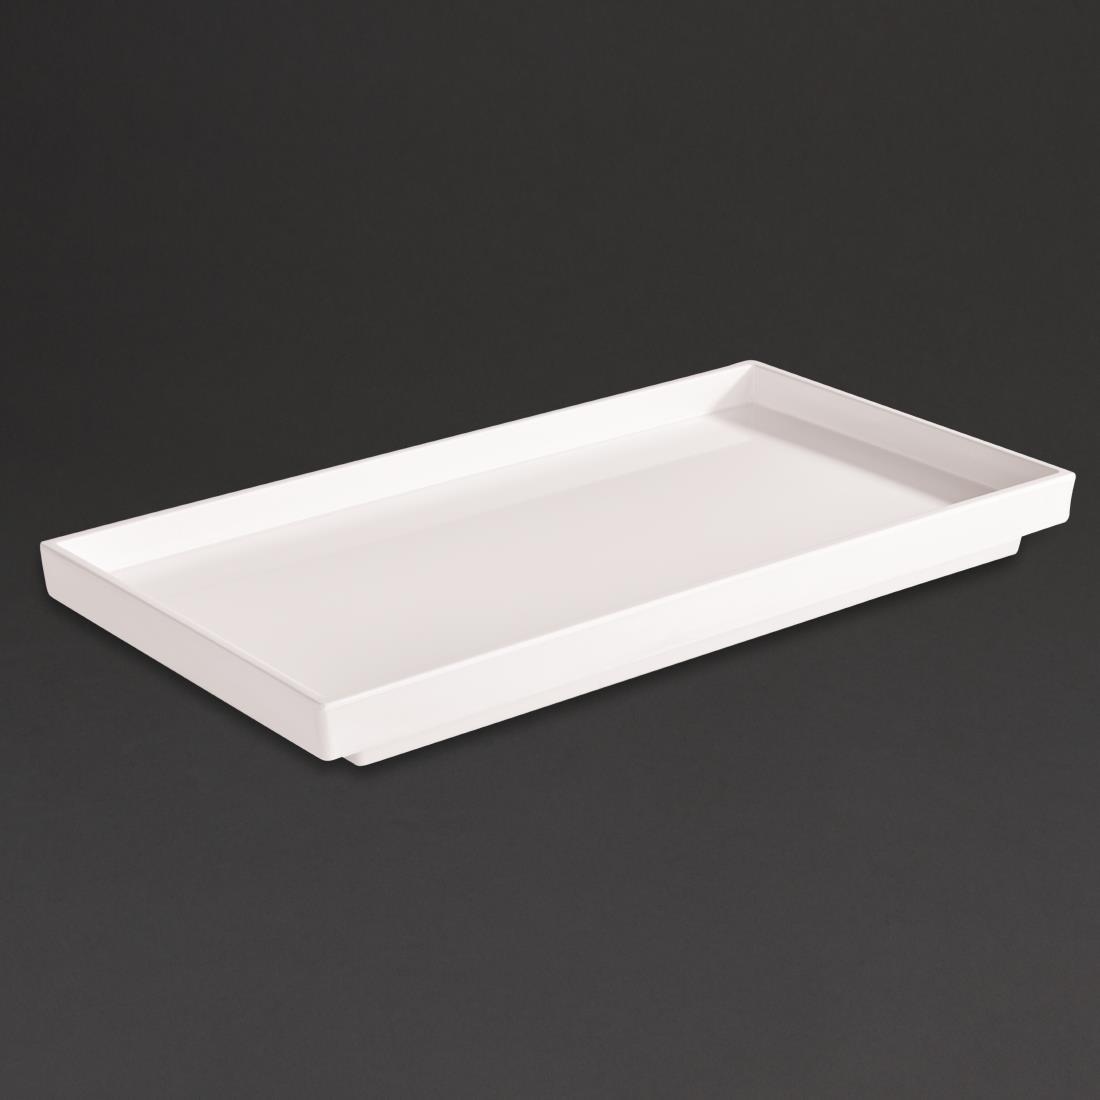 DT770 - APS Asia+  White Tray GN 1/3 - Each - DT770